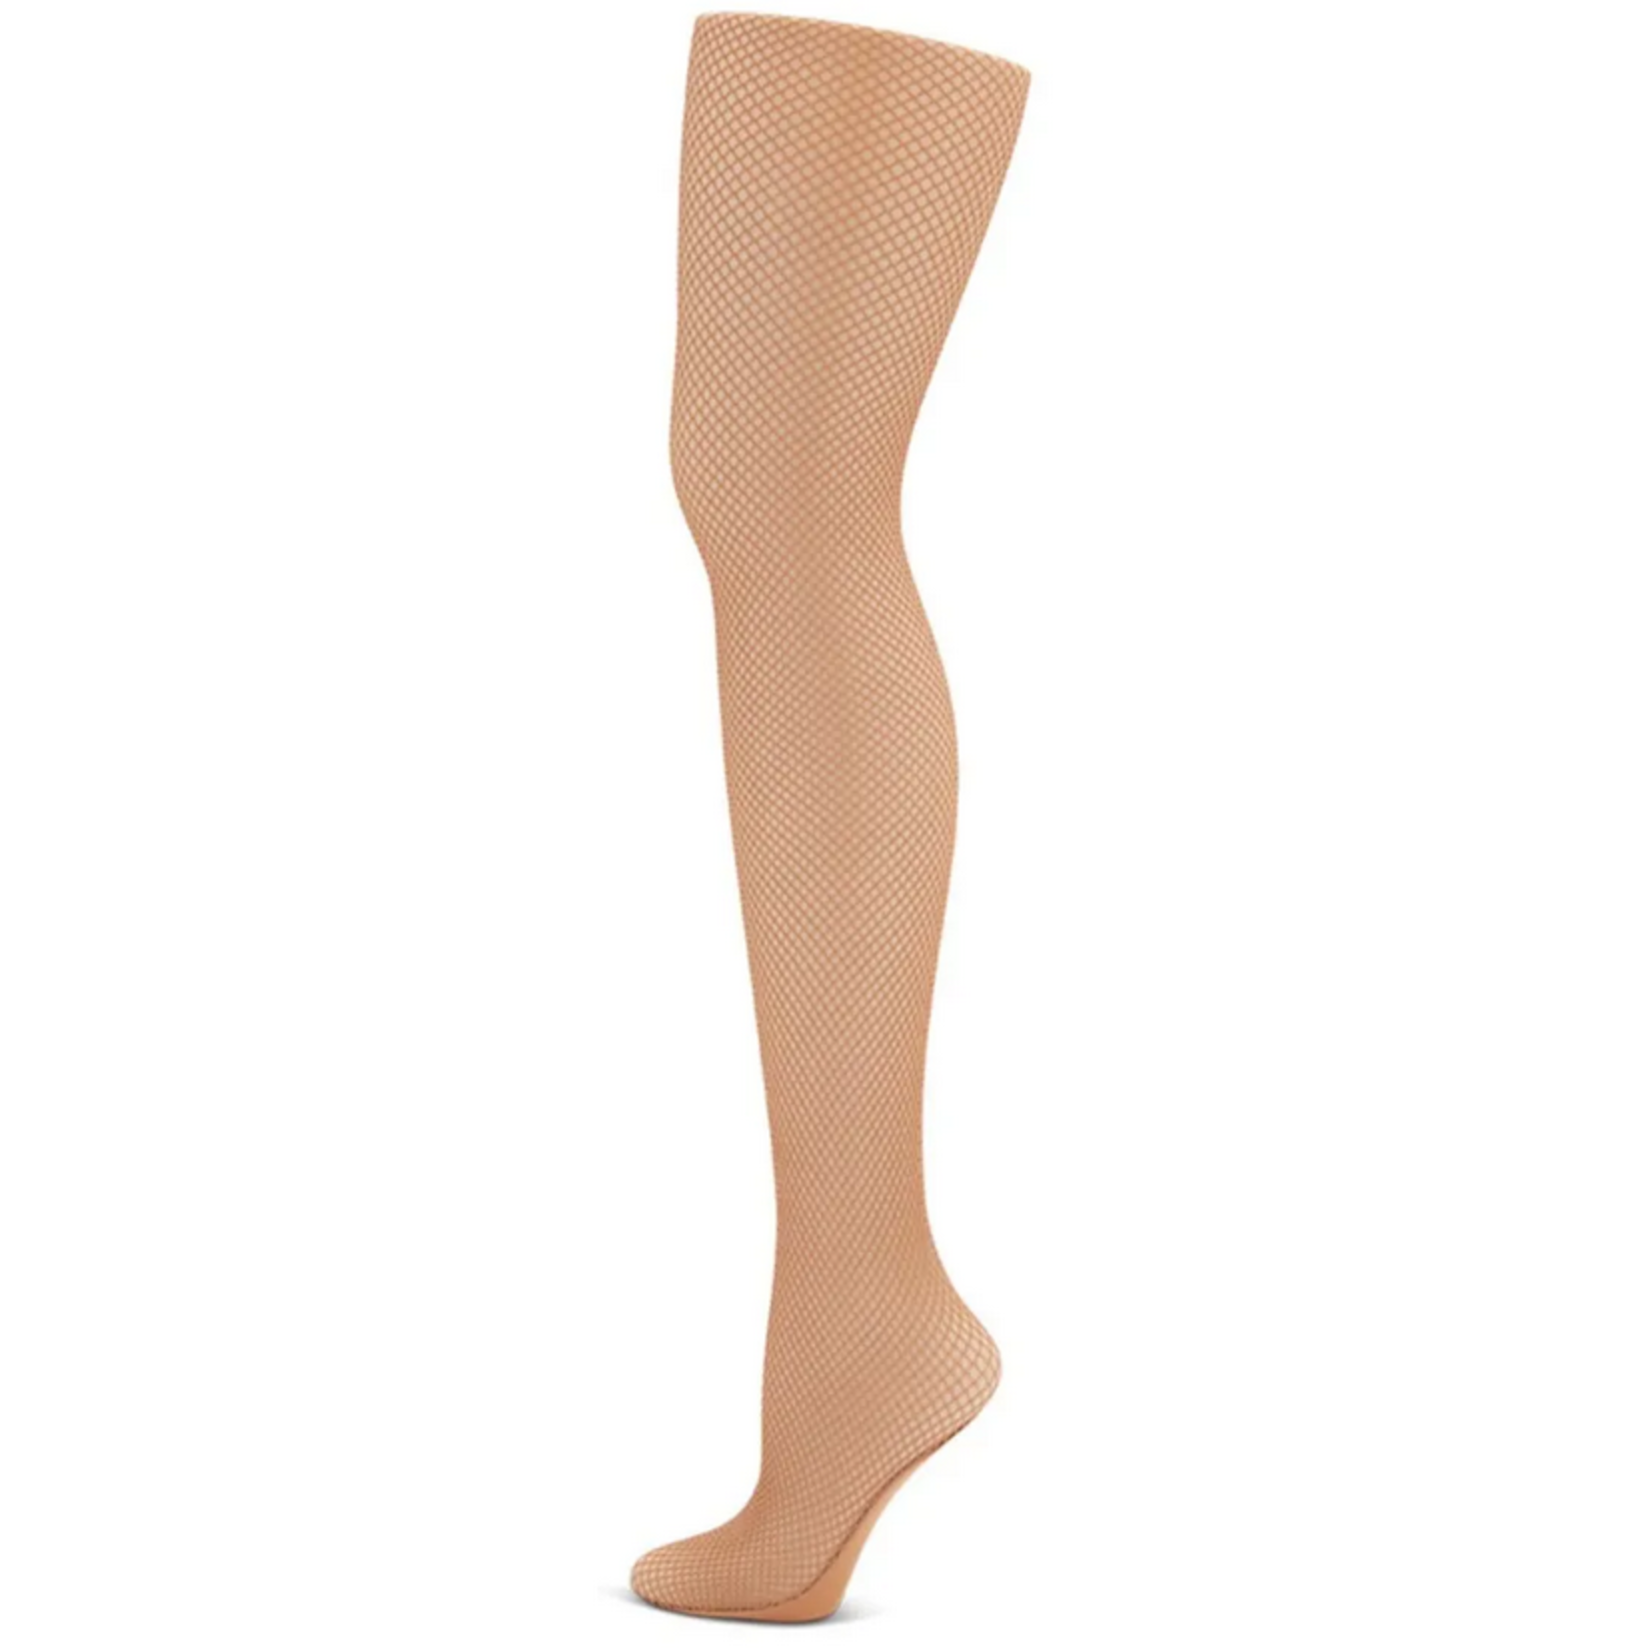 Capezio Capezio 3000 Professional Fishnet Tights